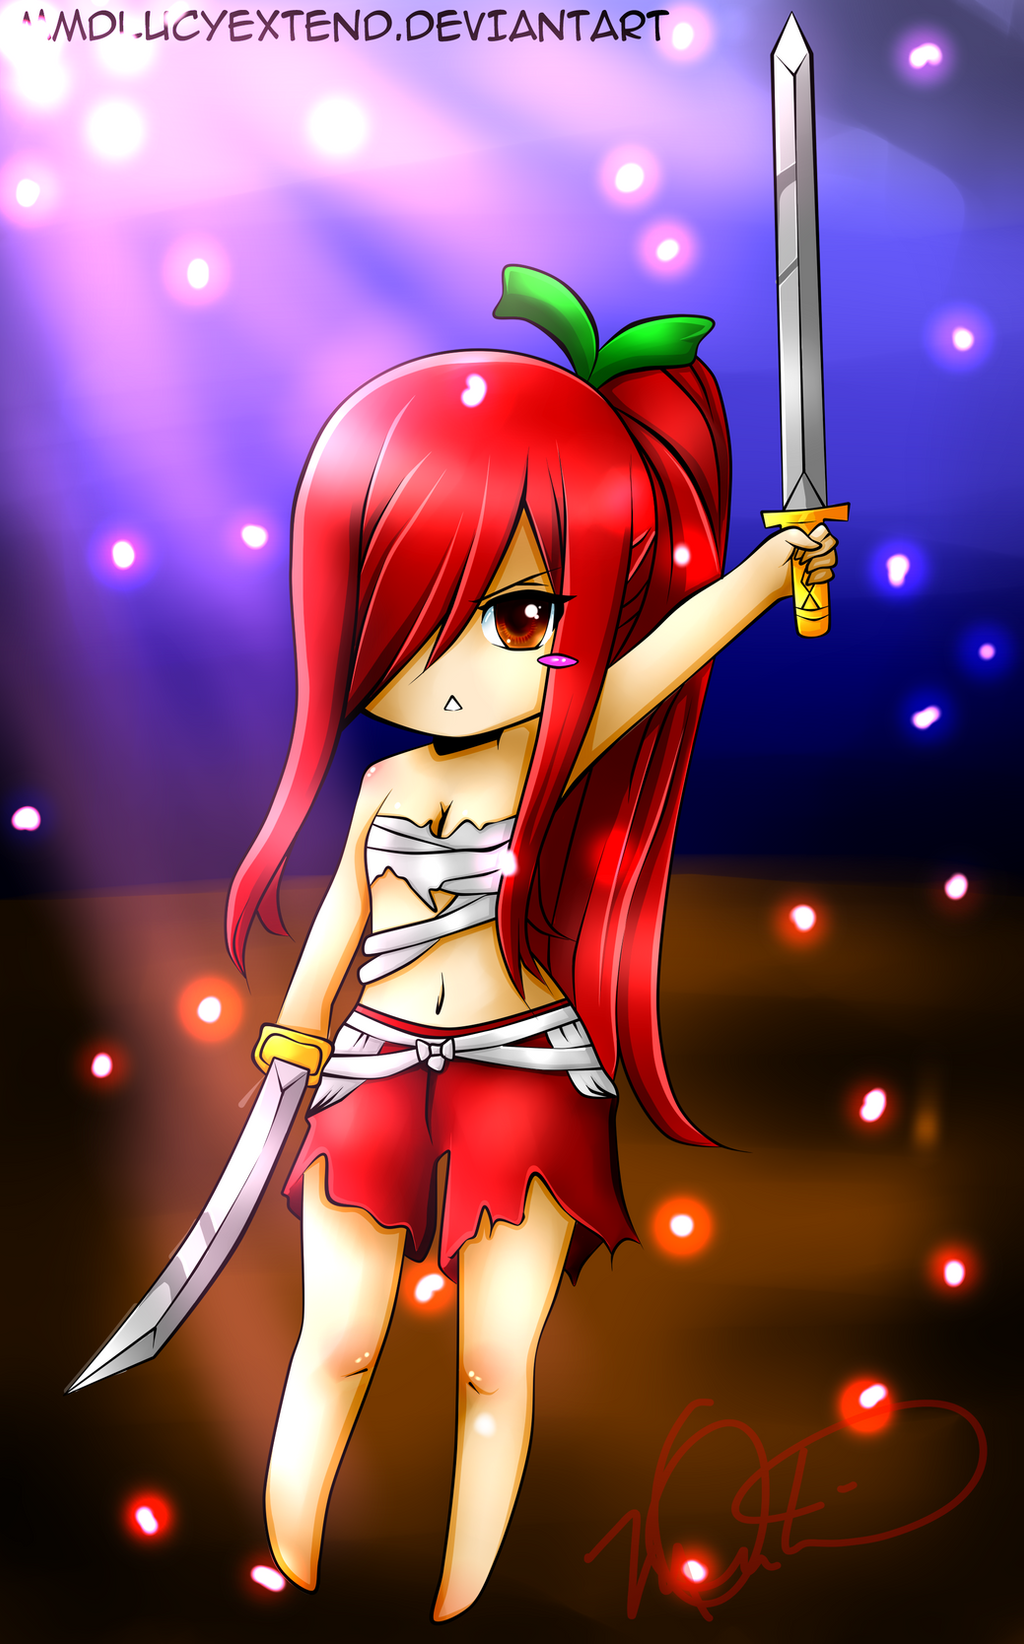 Line Art Xl 2000 : Erza lineartcolored by xl jade lx on deviantart